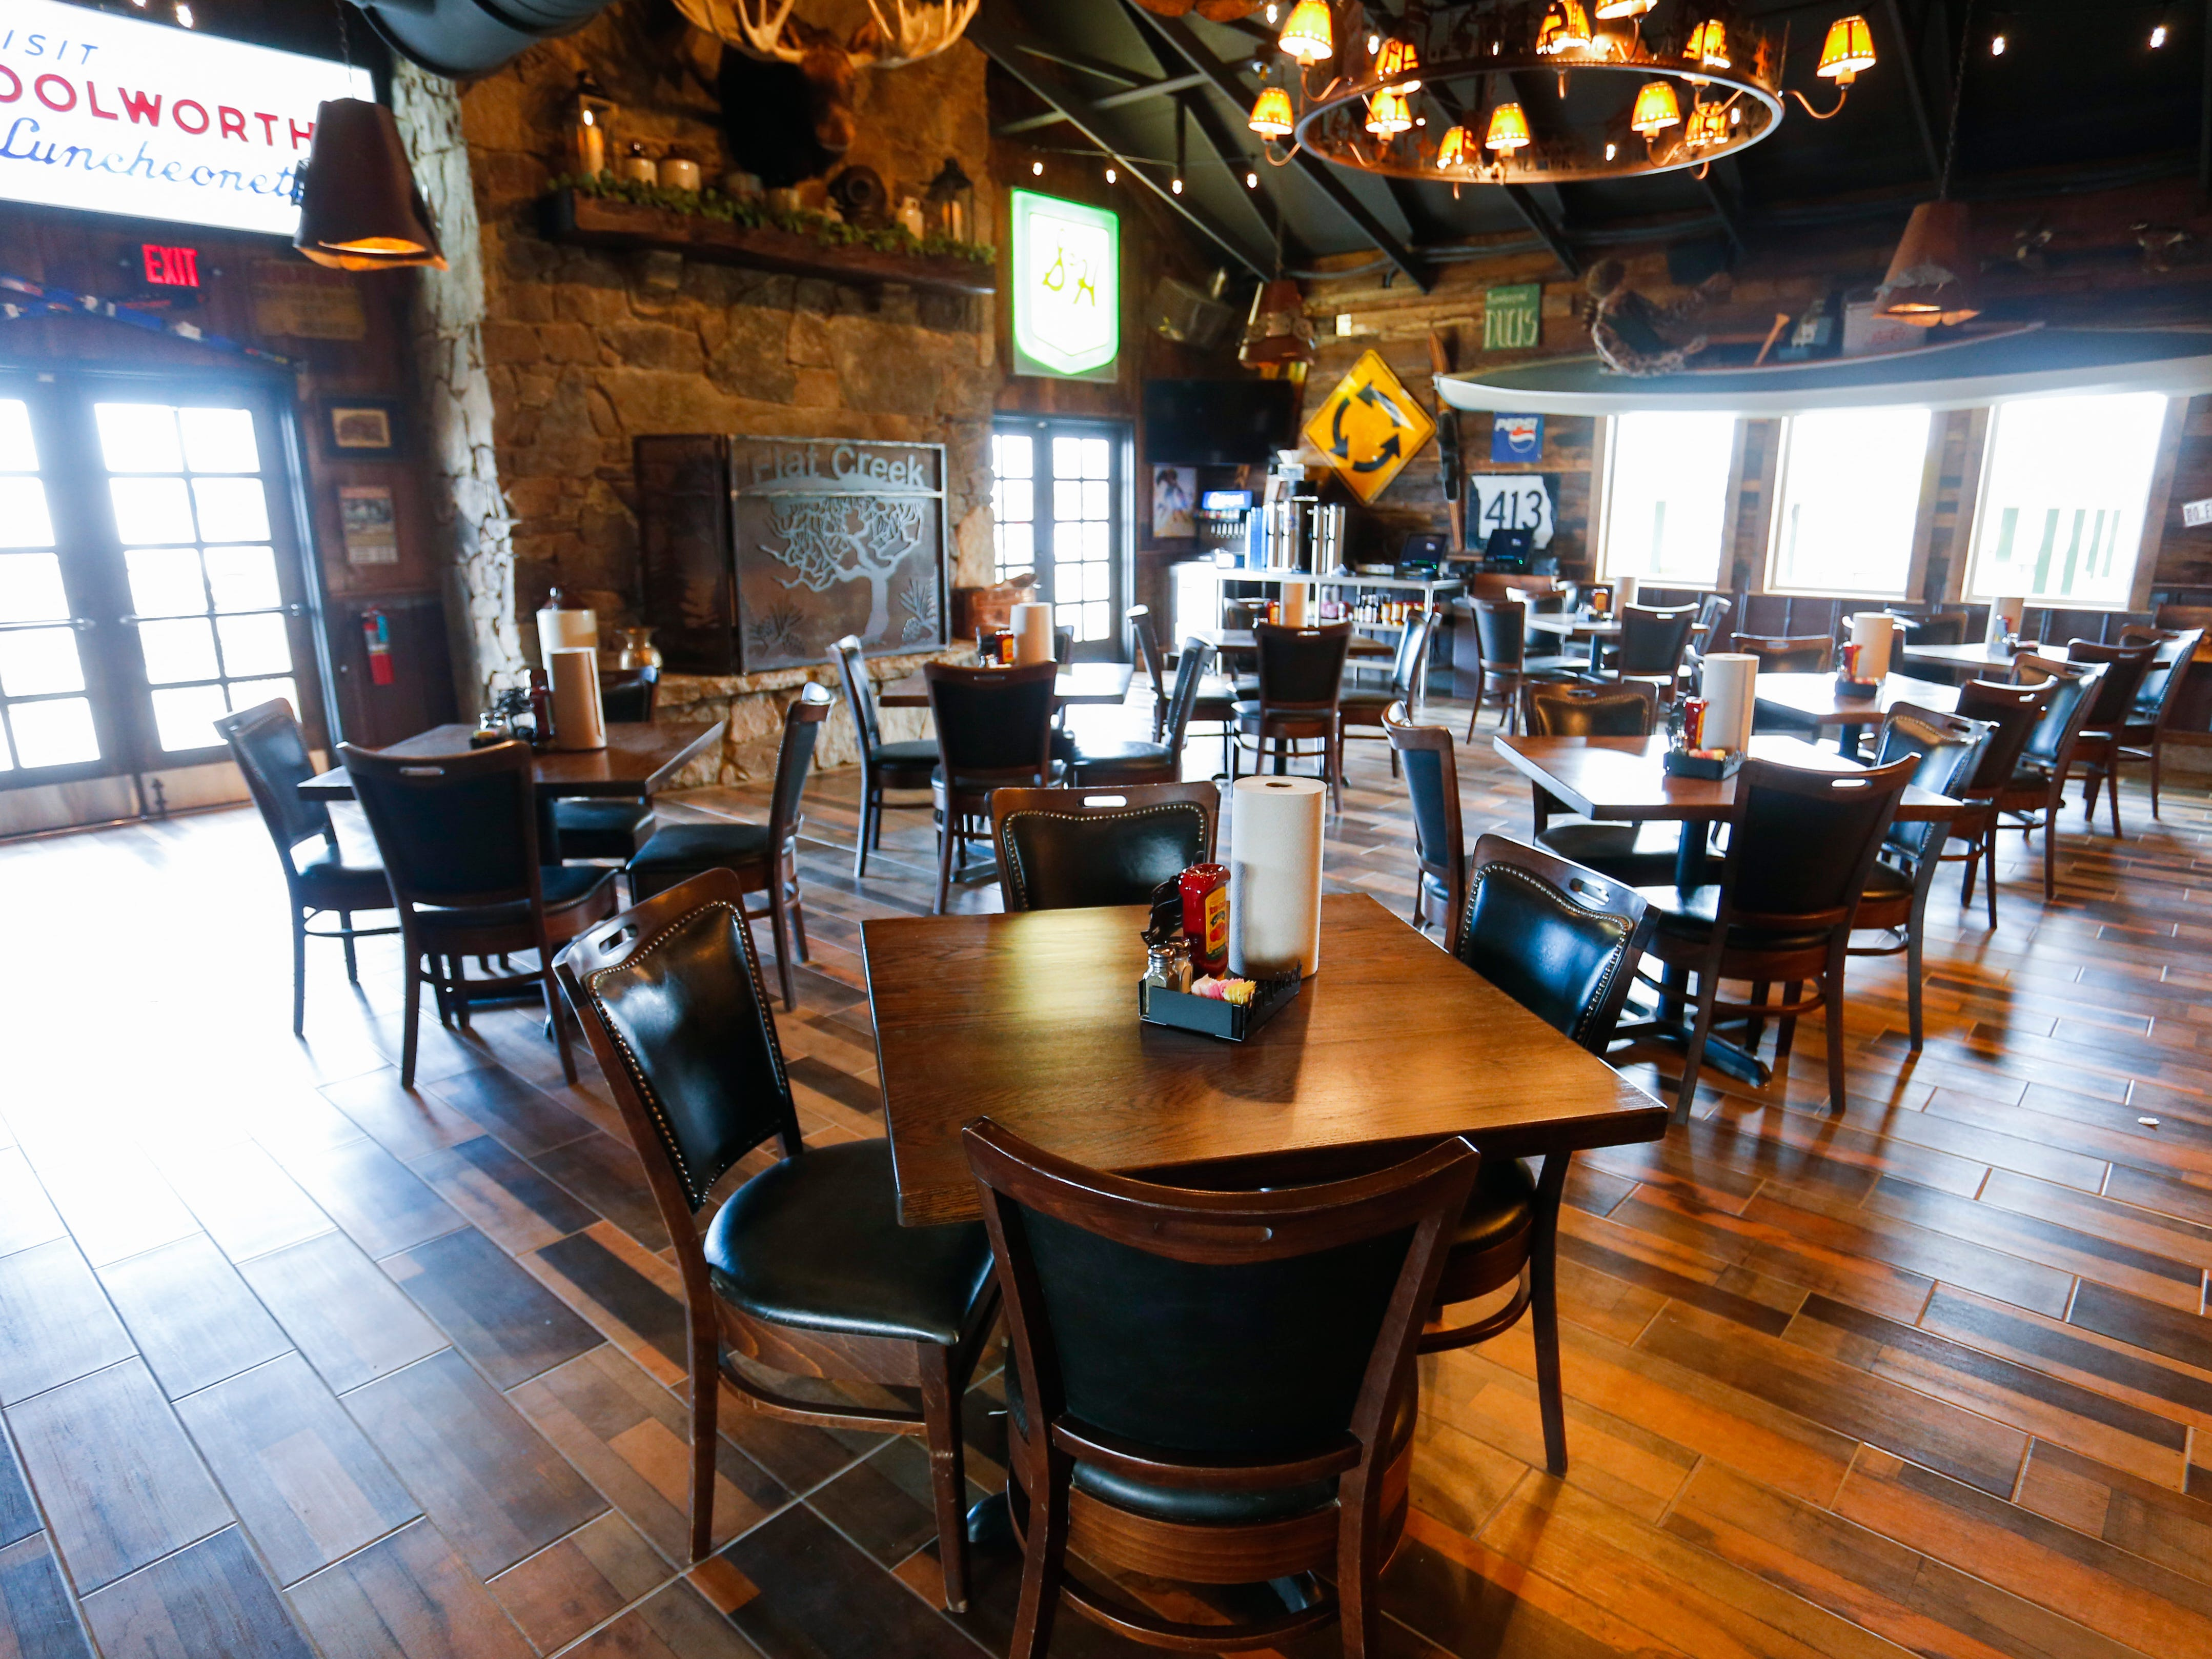 A main dining room at the new location of Flat Creek restaurant in Republic on Monday, Jan. 28, 2019.